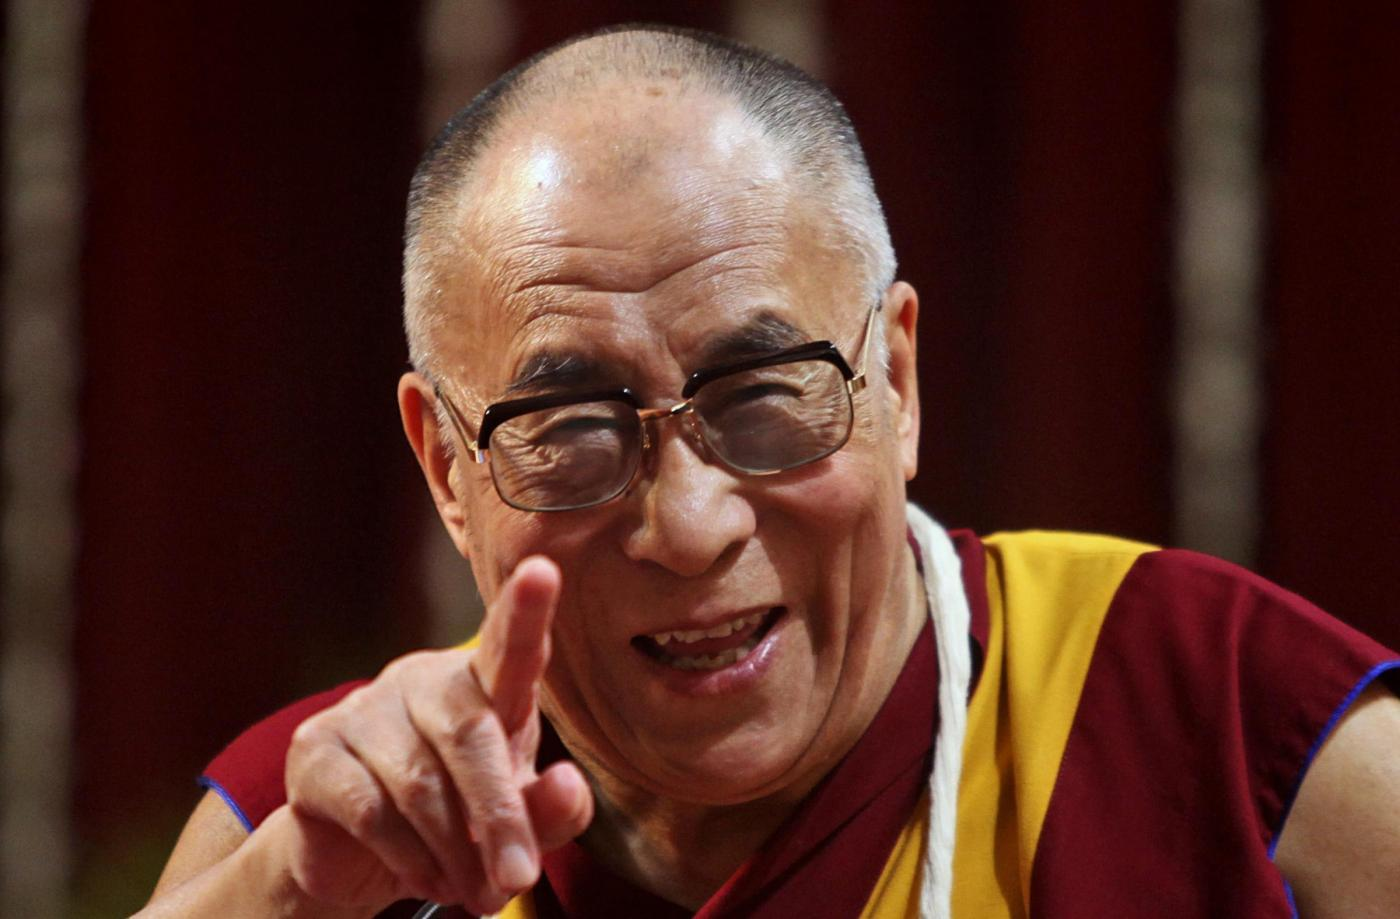 "FILE - In this Feb. 18, 2011 file photo, Tibetan spiritual leader the Dalai Lama gestures as he addresses the Mumbai University students in Mumbai, India. The Dalai Lama said Thursday, March 10, 2011, that he will give up his political role in Tibet's government-in-exile, shifting that power to an elected representative. The Tibetan spiritual leader, speaking on the anniversary of the 1959 Tibetan uprising against Chinese control, said the time has come ""to devolve my formal authority to the elected leader."" (AP Photo/Rafiq Maqbool, File)"